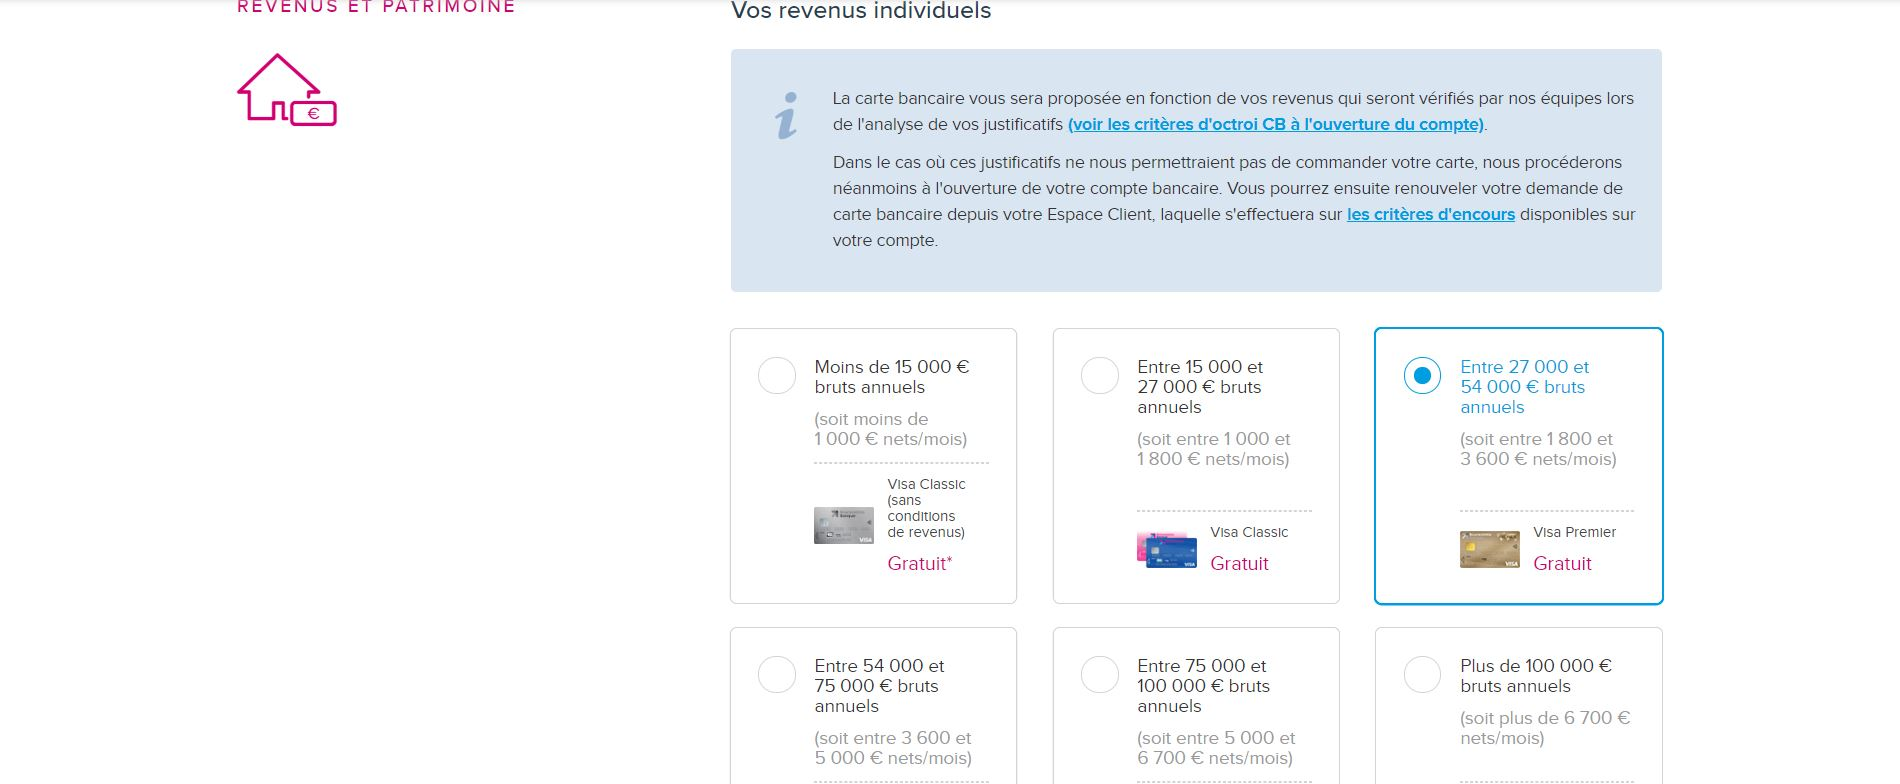 Index Of Carte Bancaire.Index Of Wp Content Uploads 2018 04